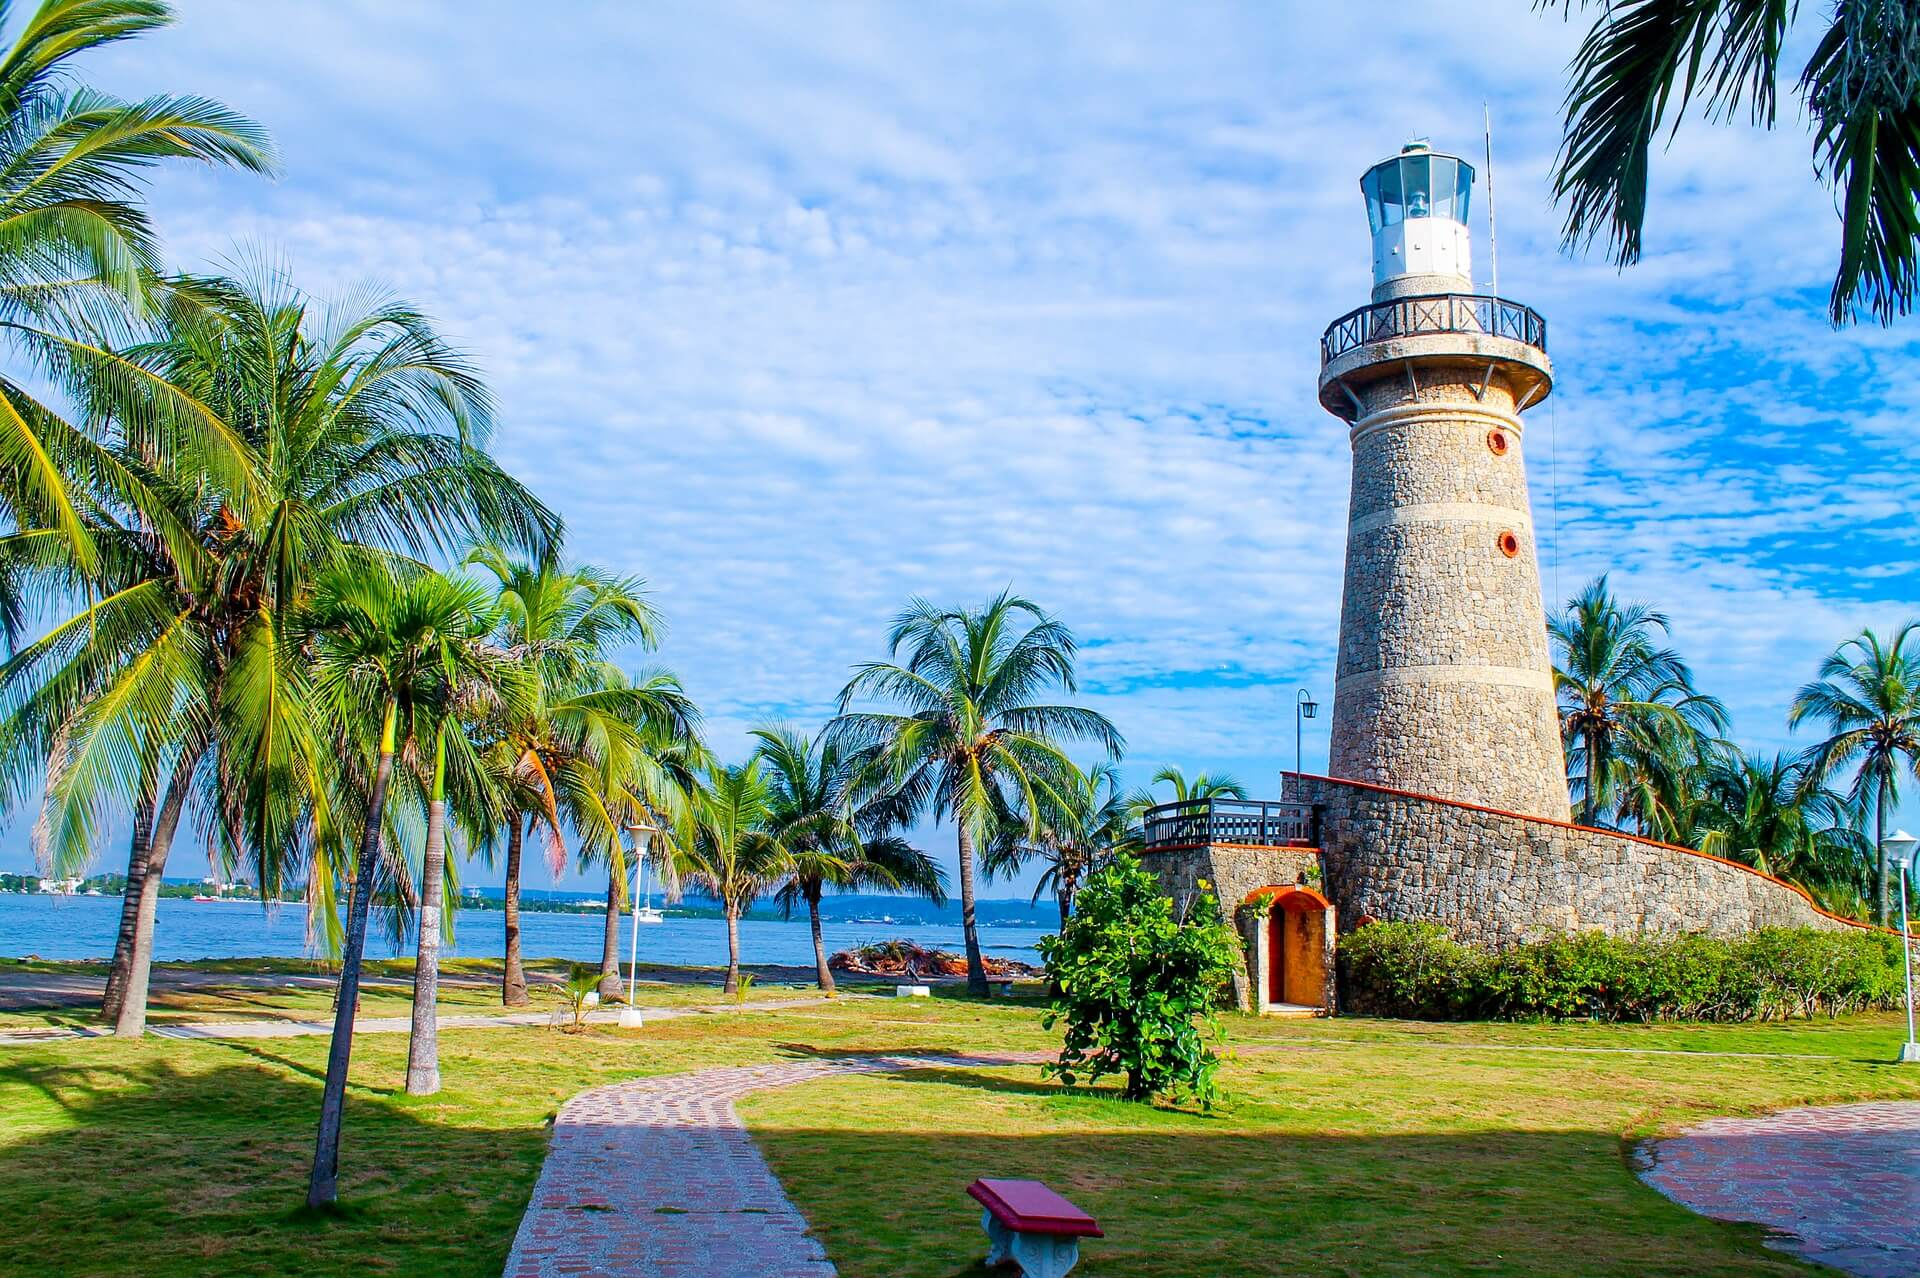 Photo of lighthouse in Cartegena made of stnes with a white top. Palm trees to the left, green grass, white clouds cover most of the blue sky.